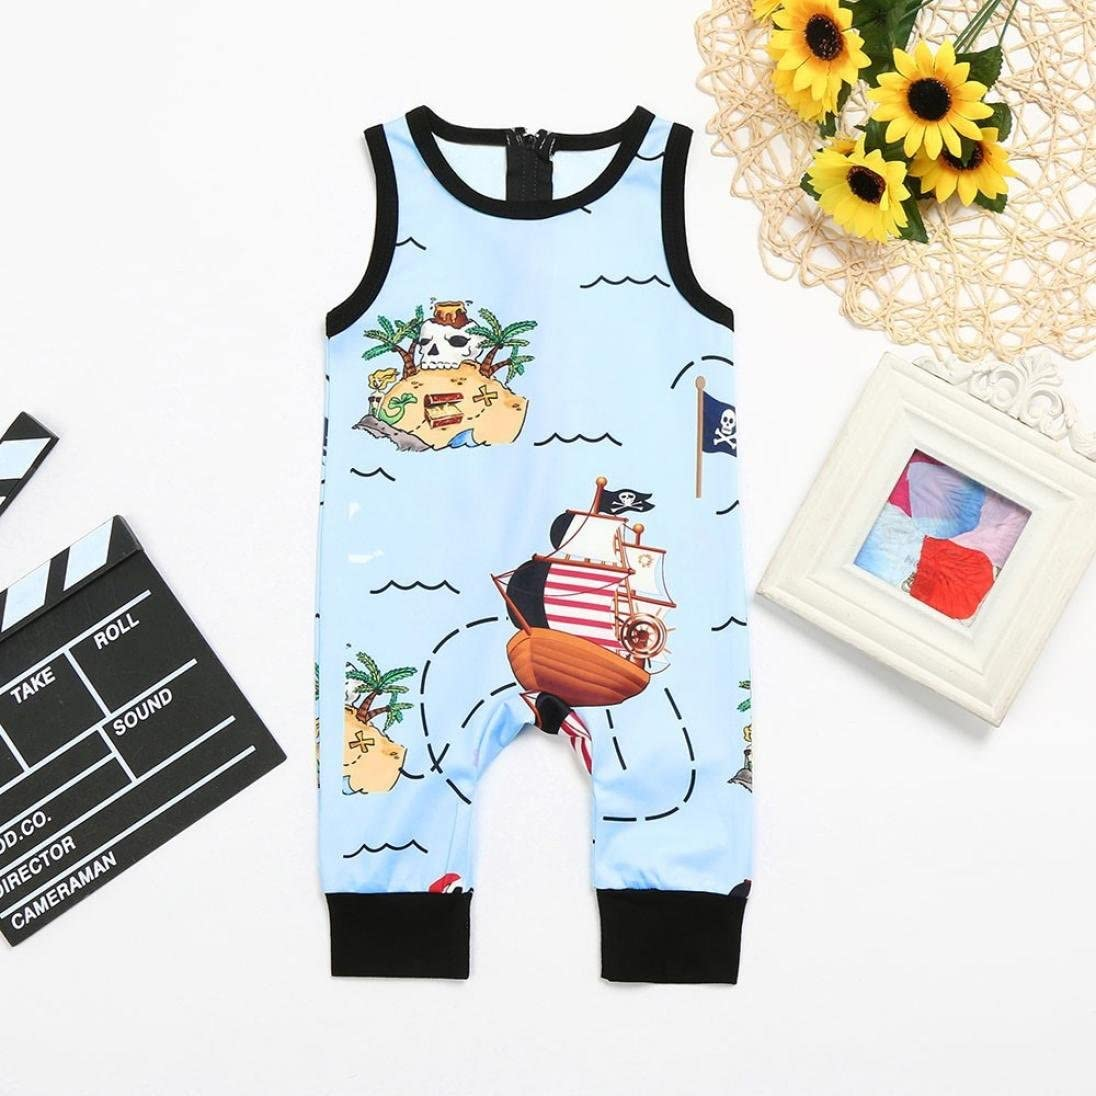 Efaster Toddler Baby Boy Girl Cartoon Pirate Print Zip Romper Jumpsuit Clothes